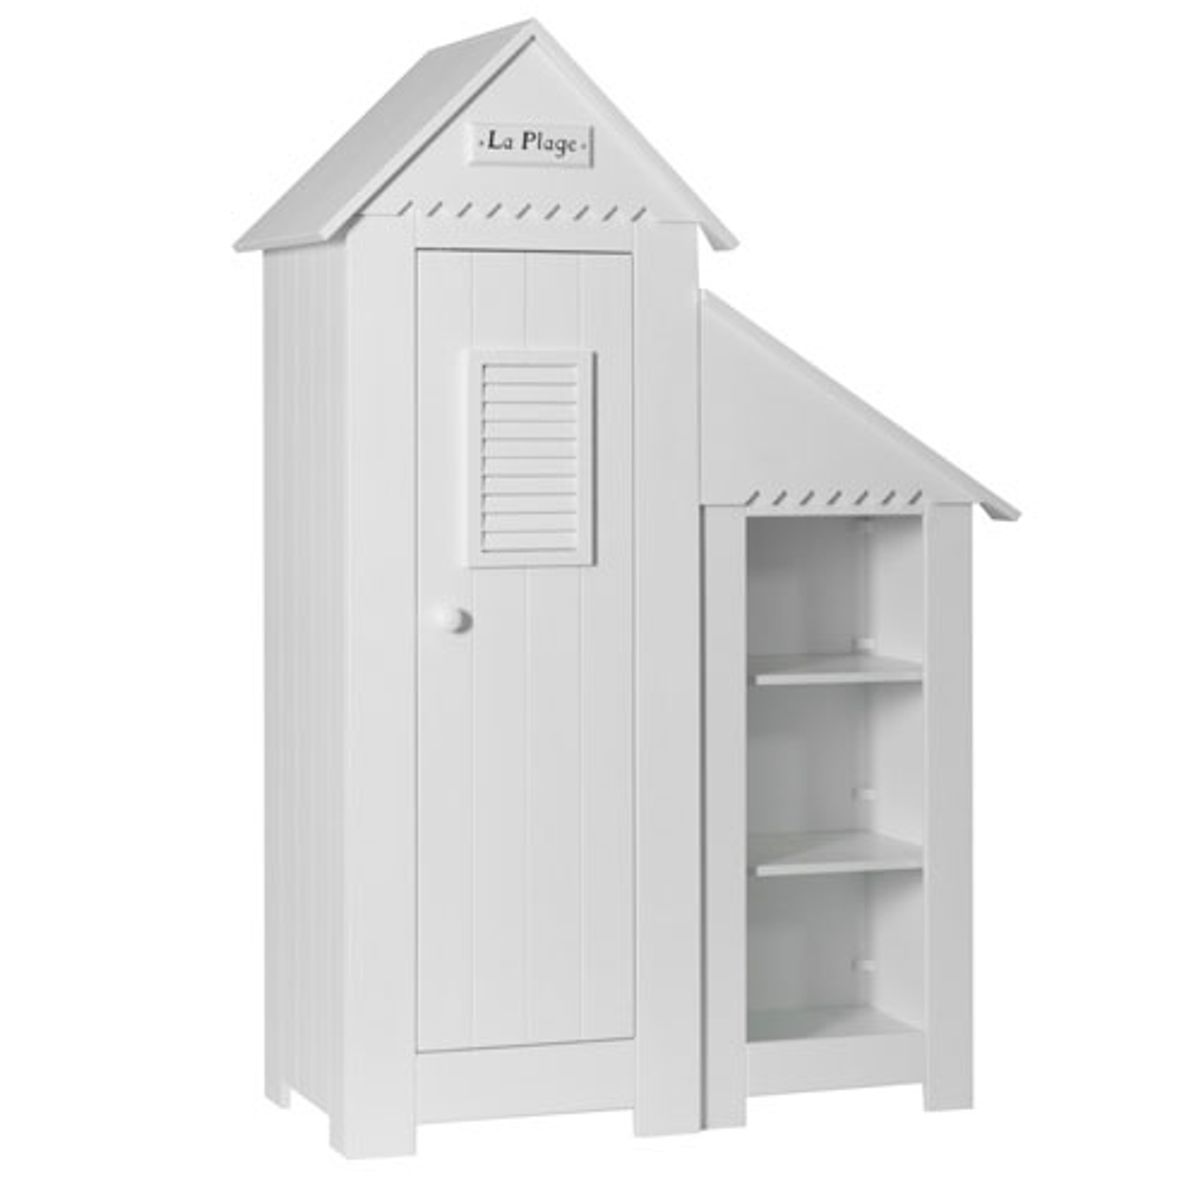 biblioth que basse enfant cabine de plage en bois blanc. Black Bedroom Furniture Sets. Home Design Ideas